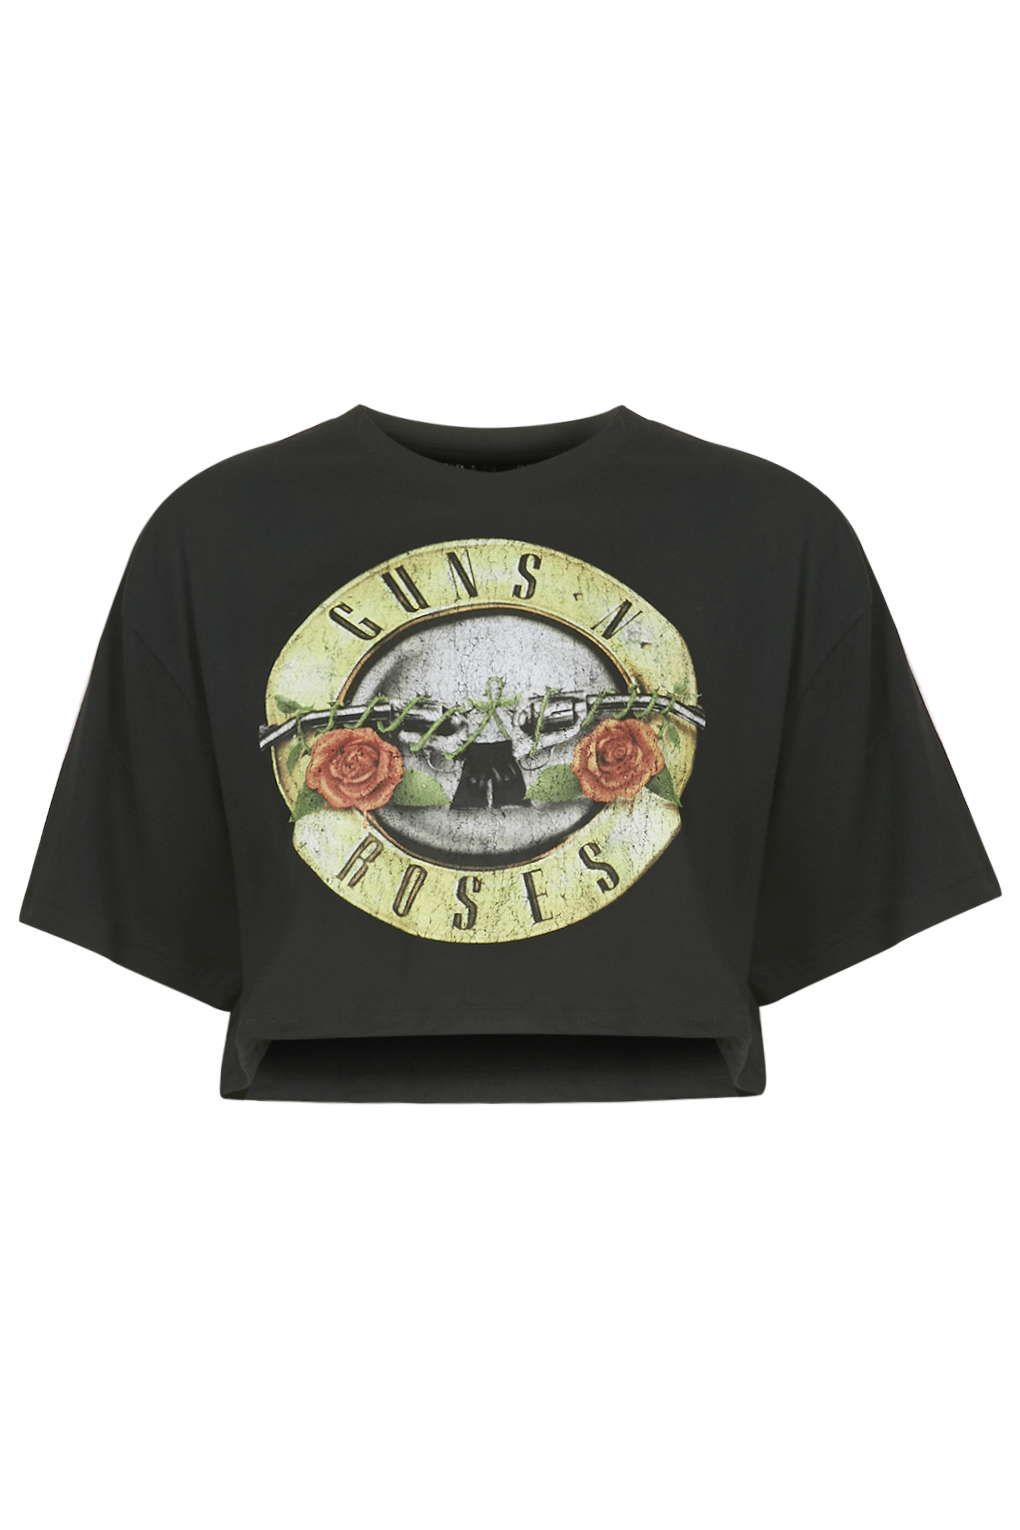 f4aea6dbe Guns And Roses Crop Top By And Finally - Tops - Clothing | Topshop ...